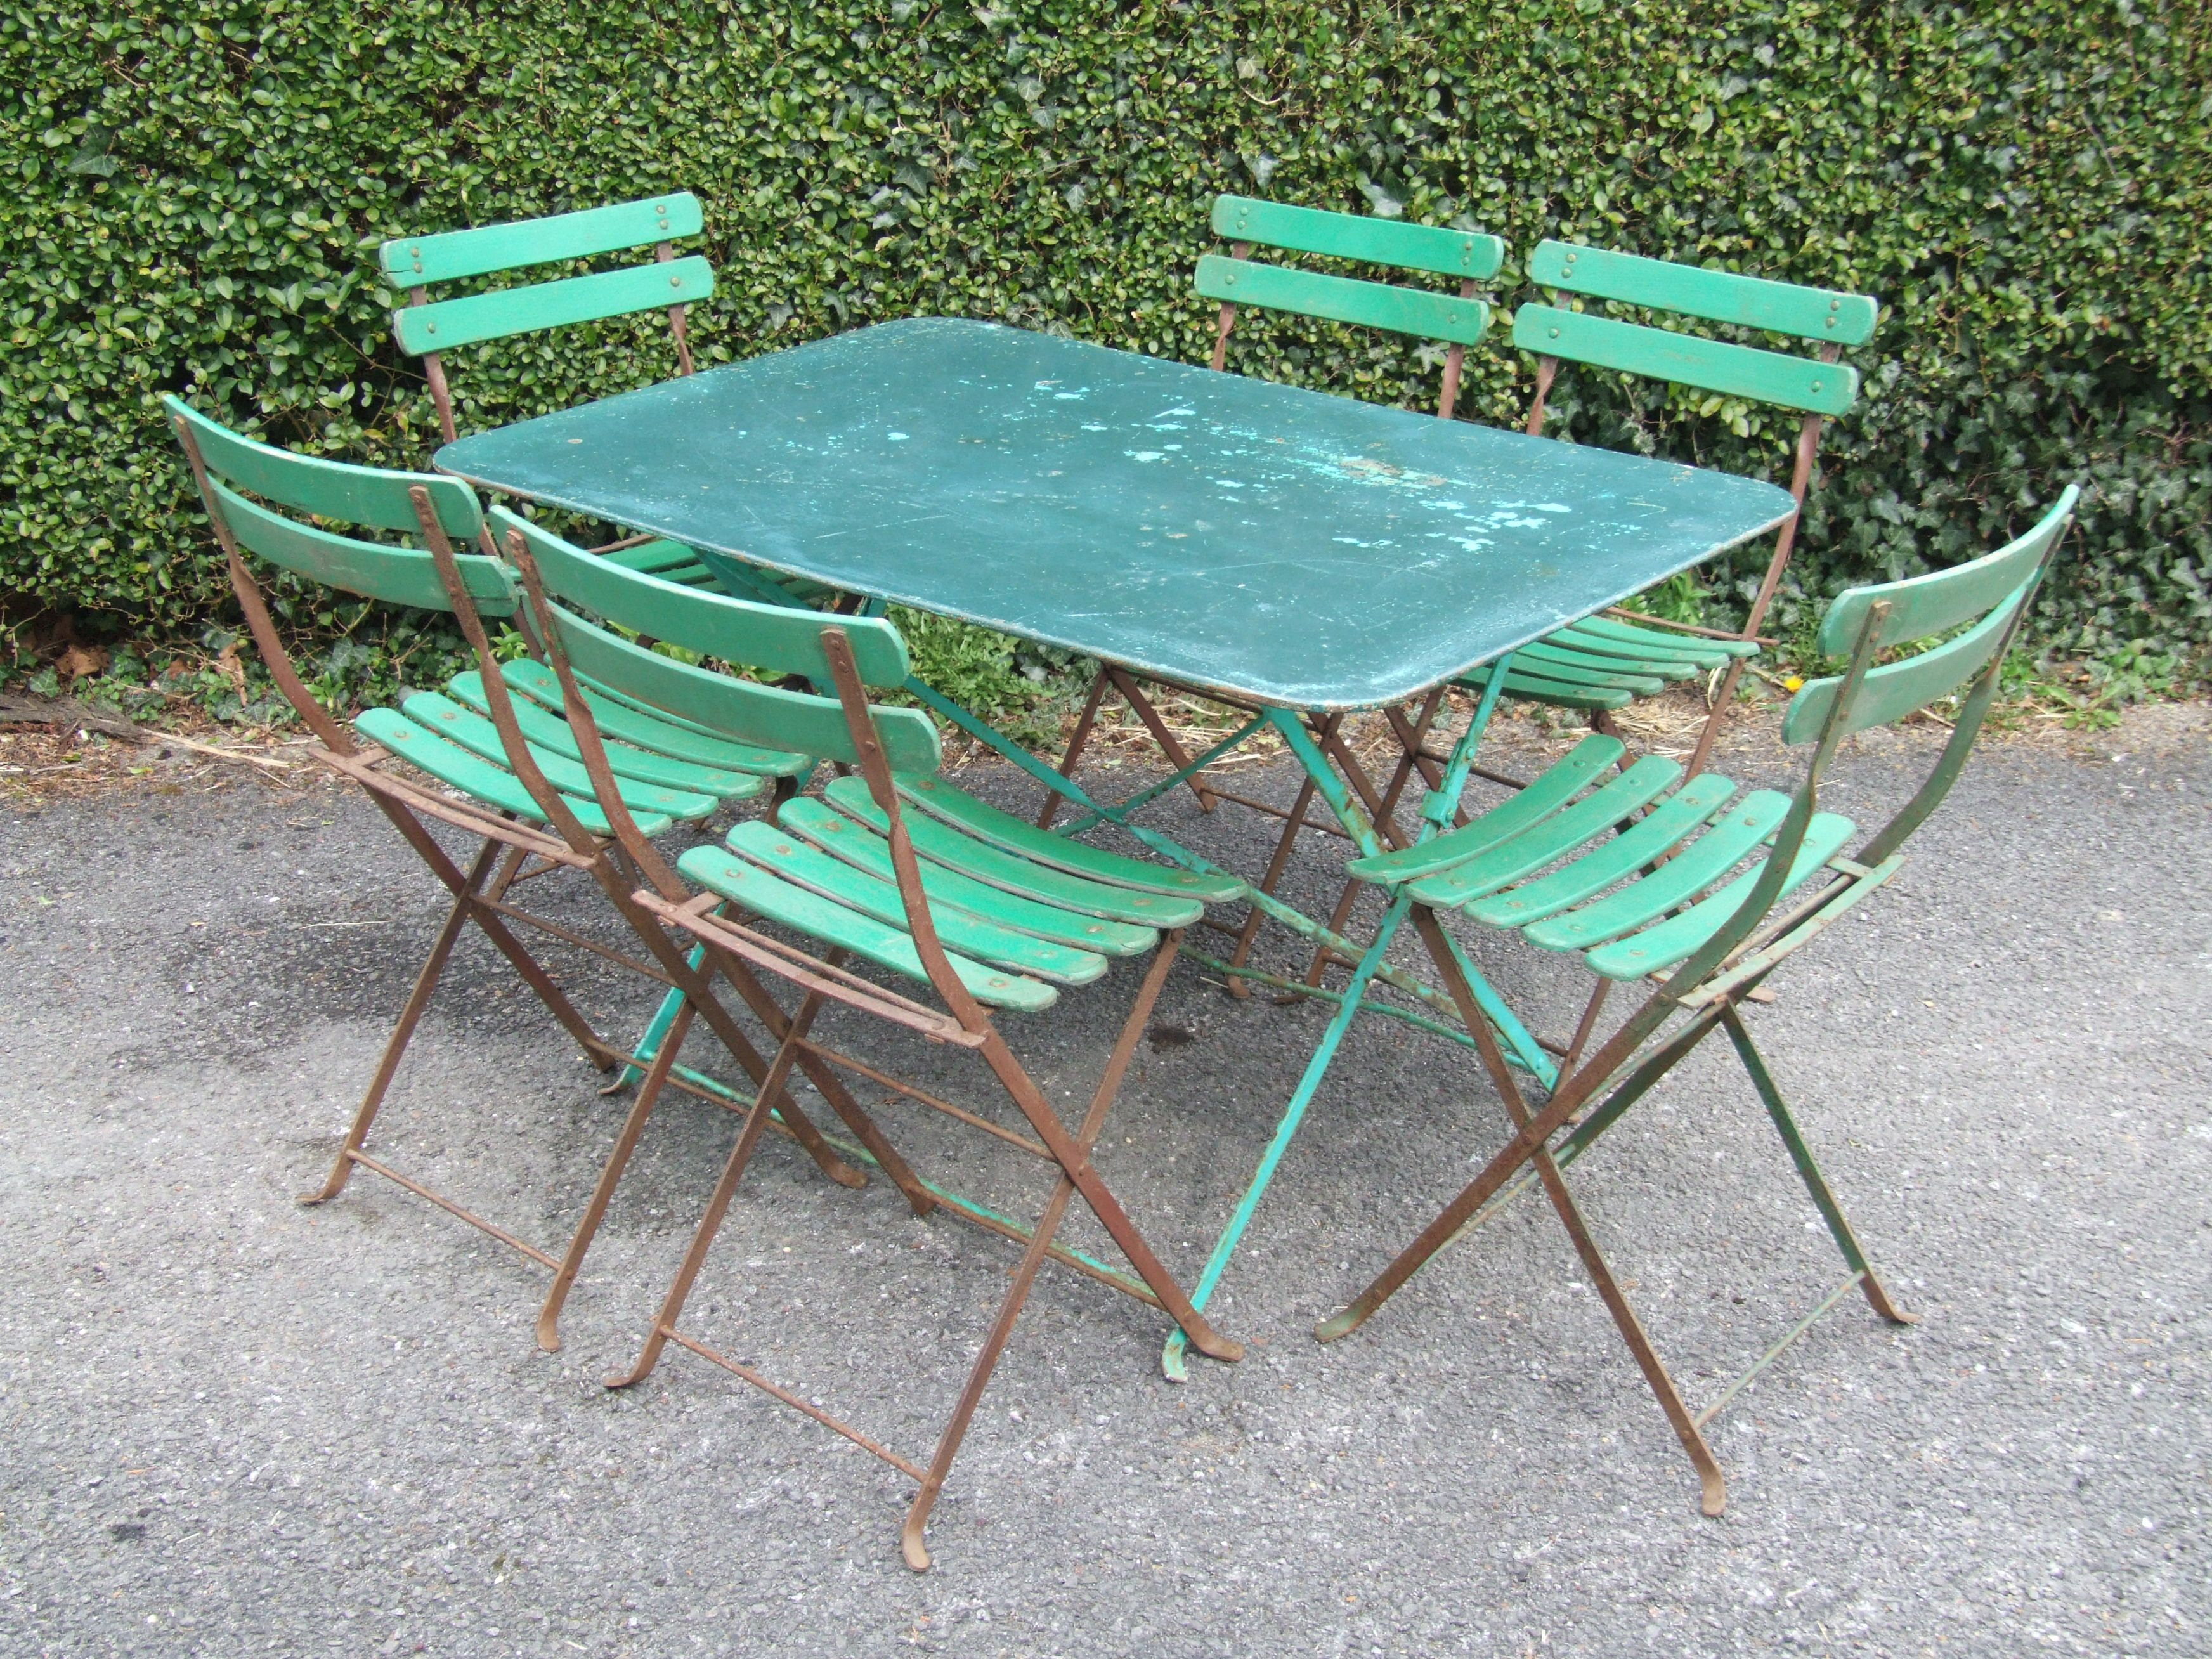 G214 vintage french 6 seater folding metal garden caf patio table la belle toffe French metal garden furniture